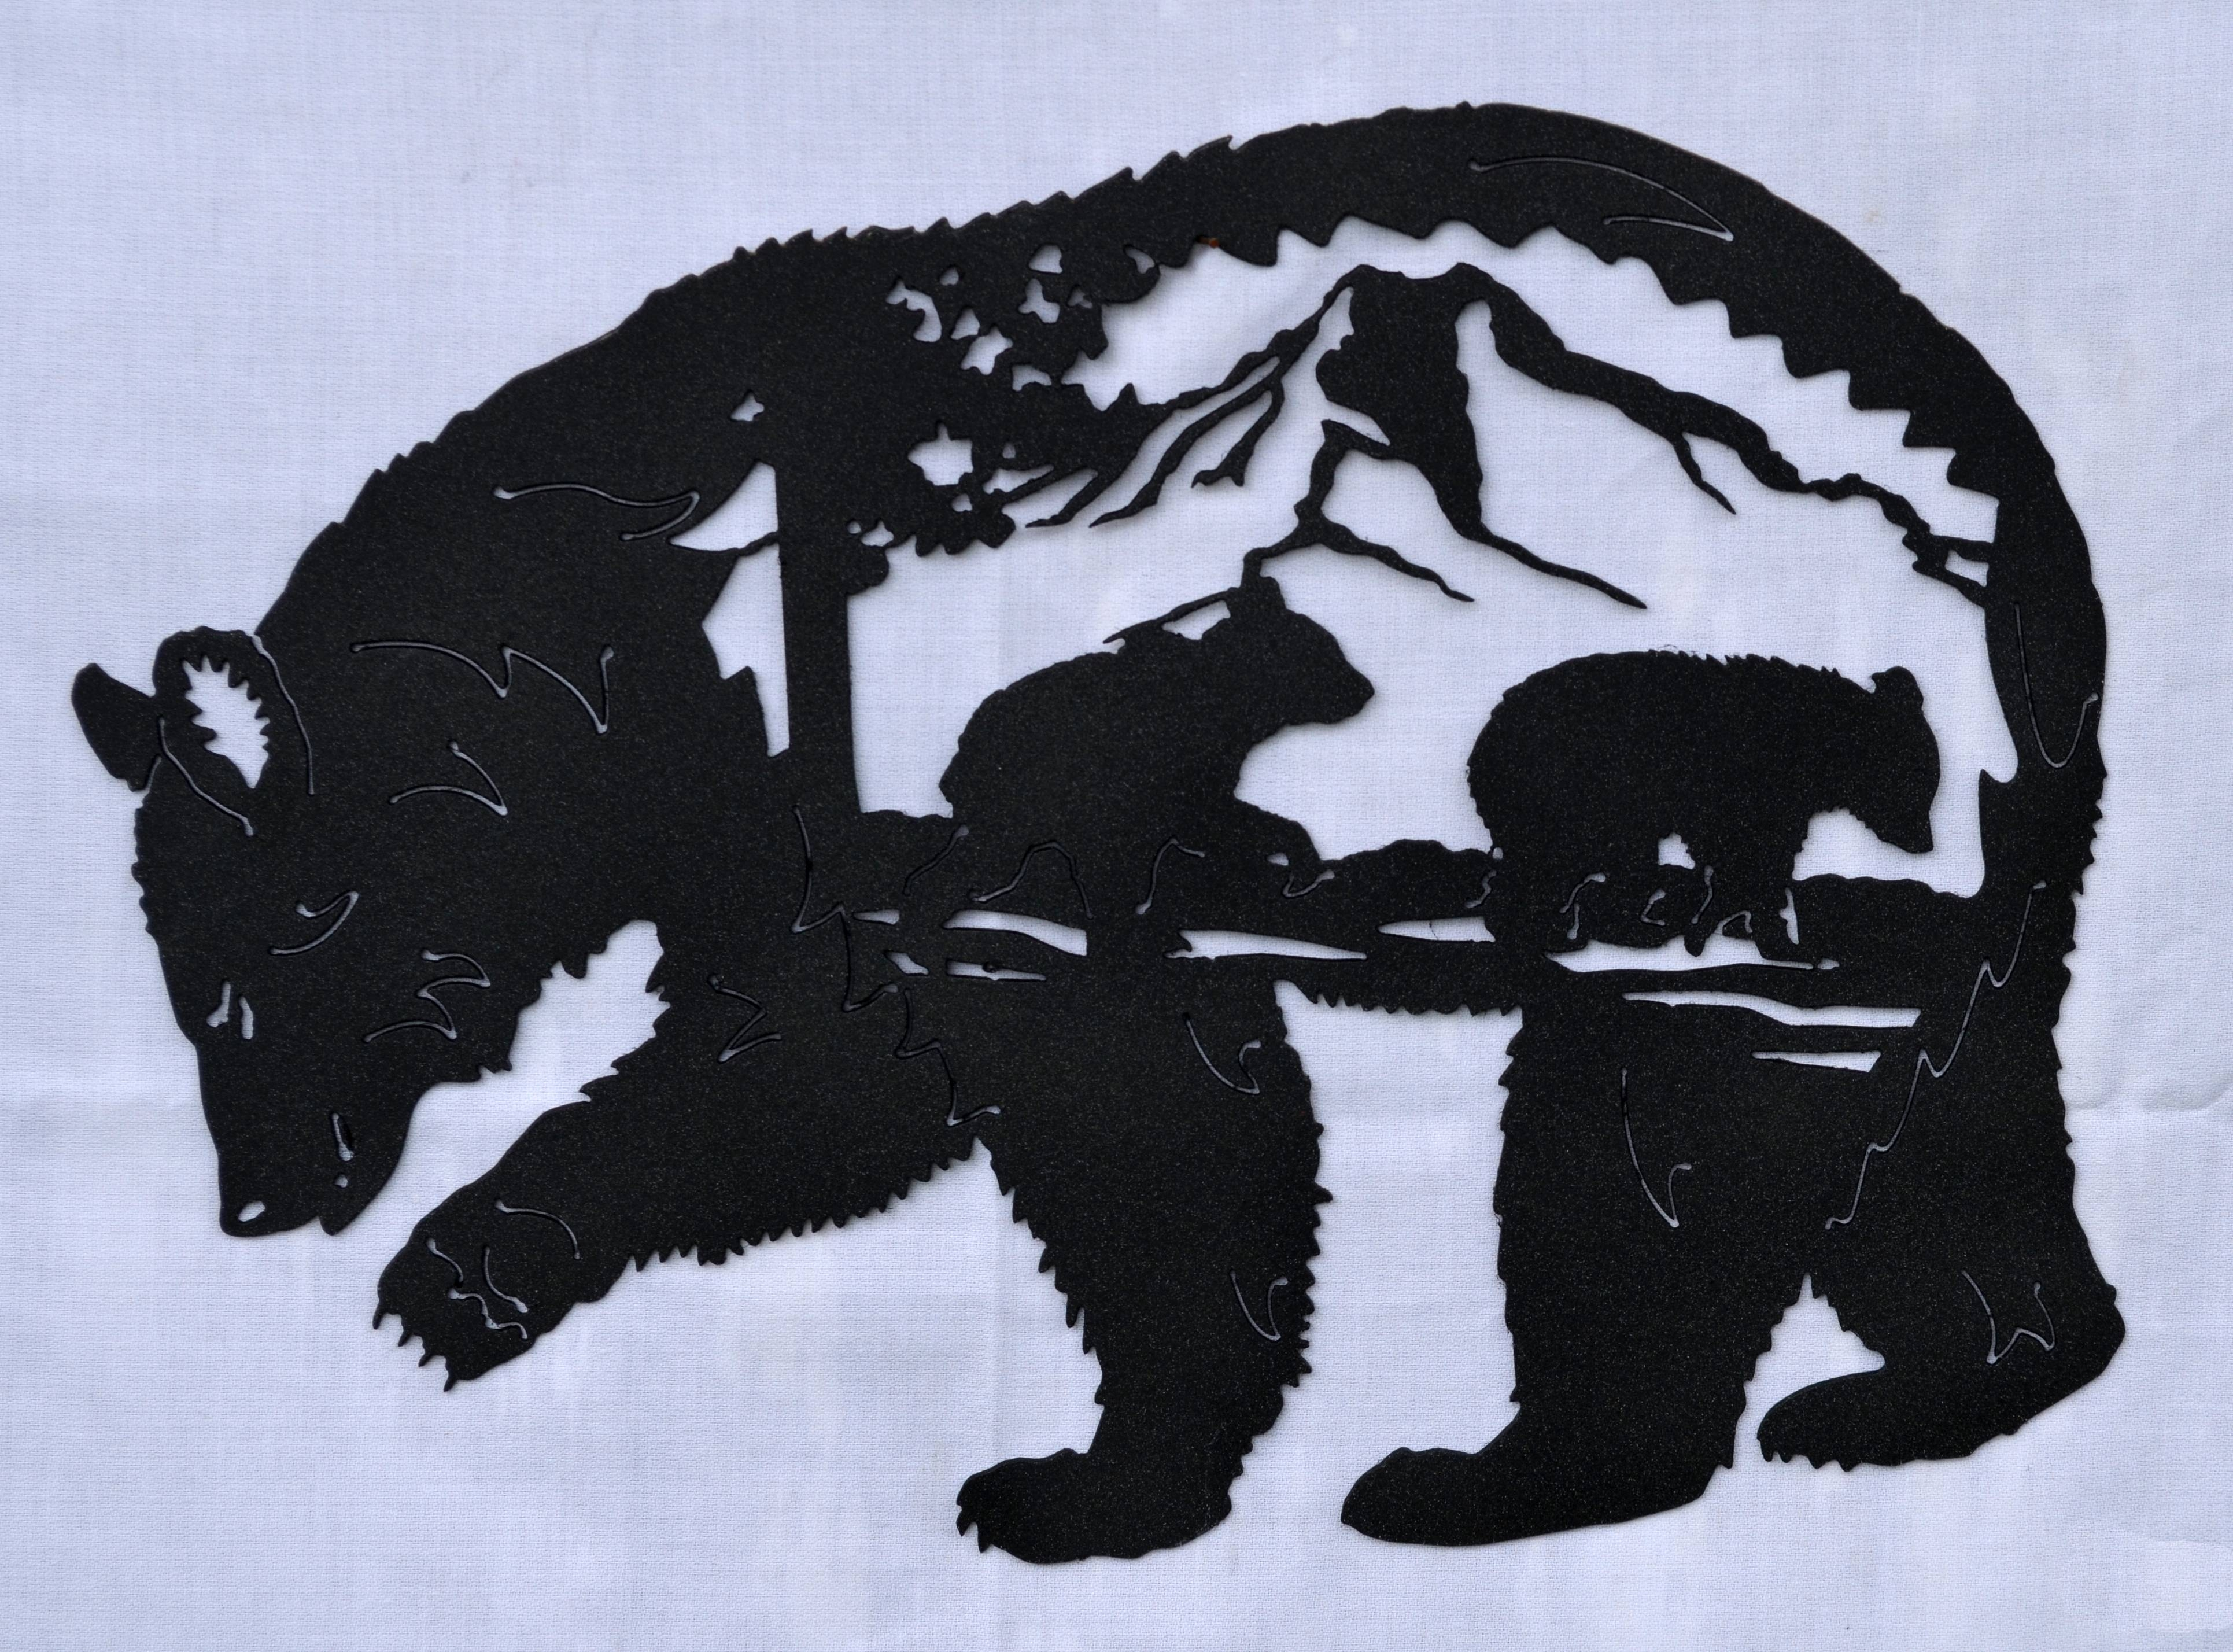 Bear Scene – Country Wonders With Regard To 2018 Black Bear Metal Wall Art (View 10 of 20)